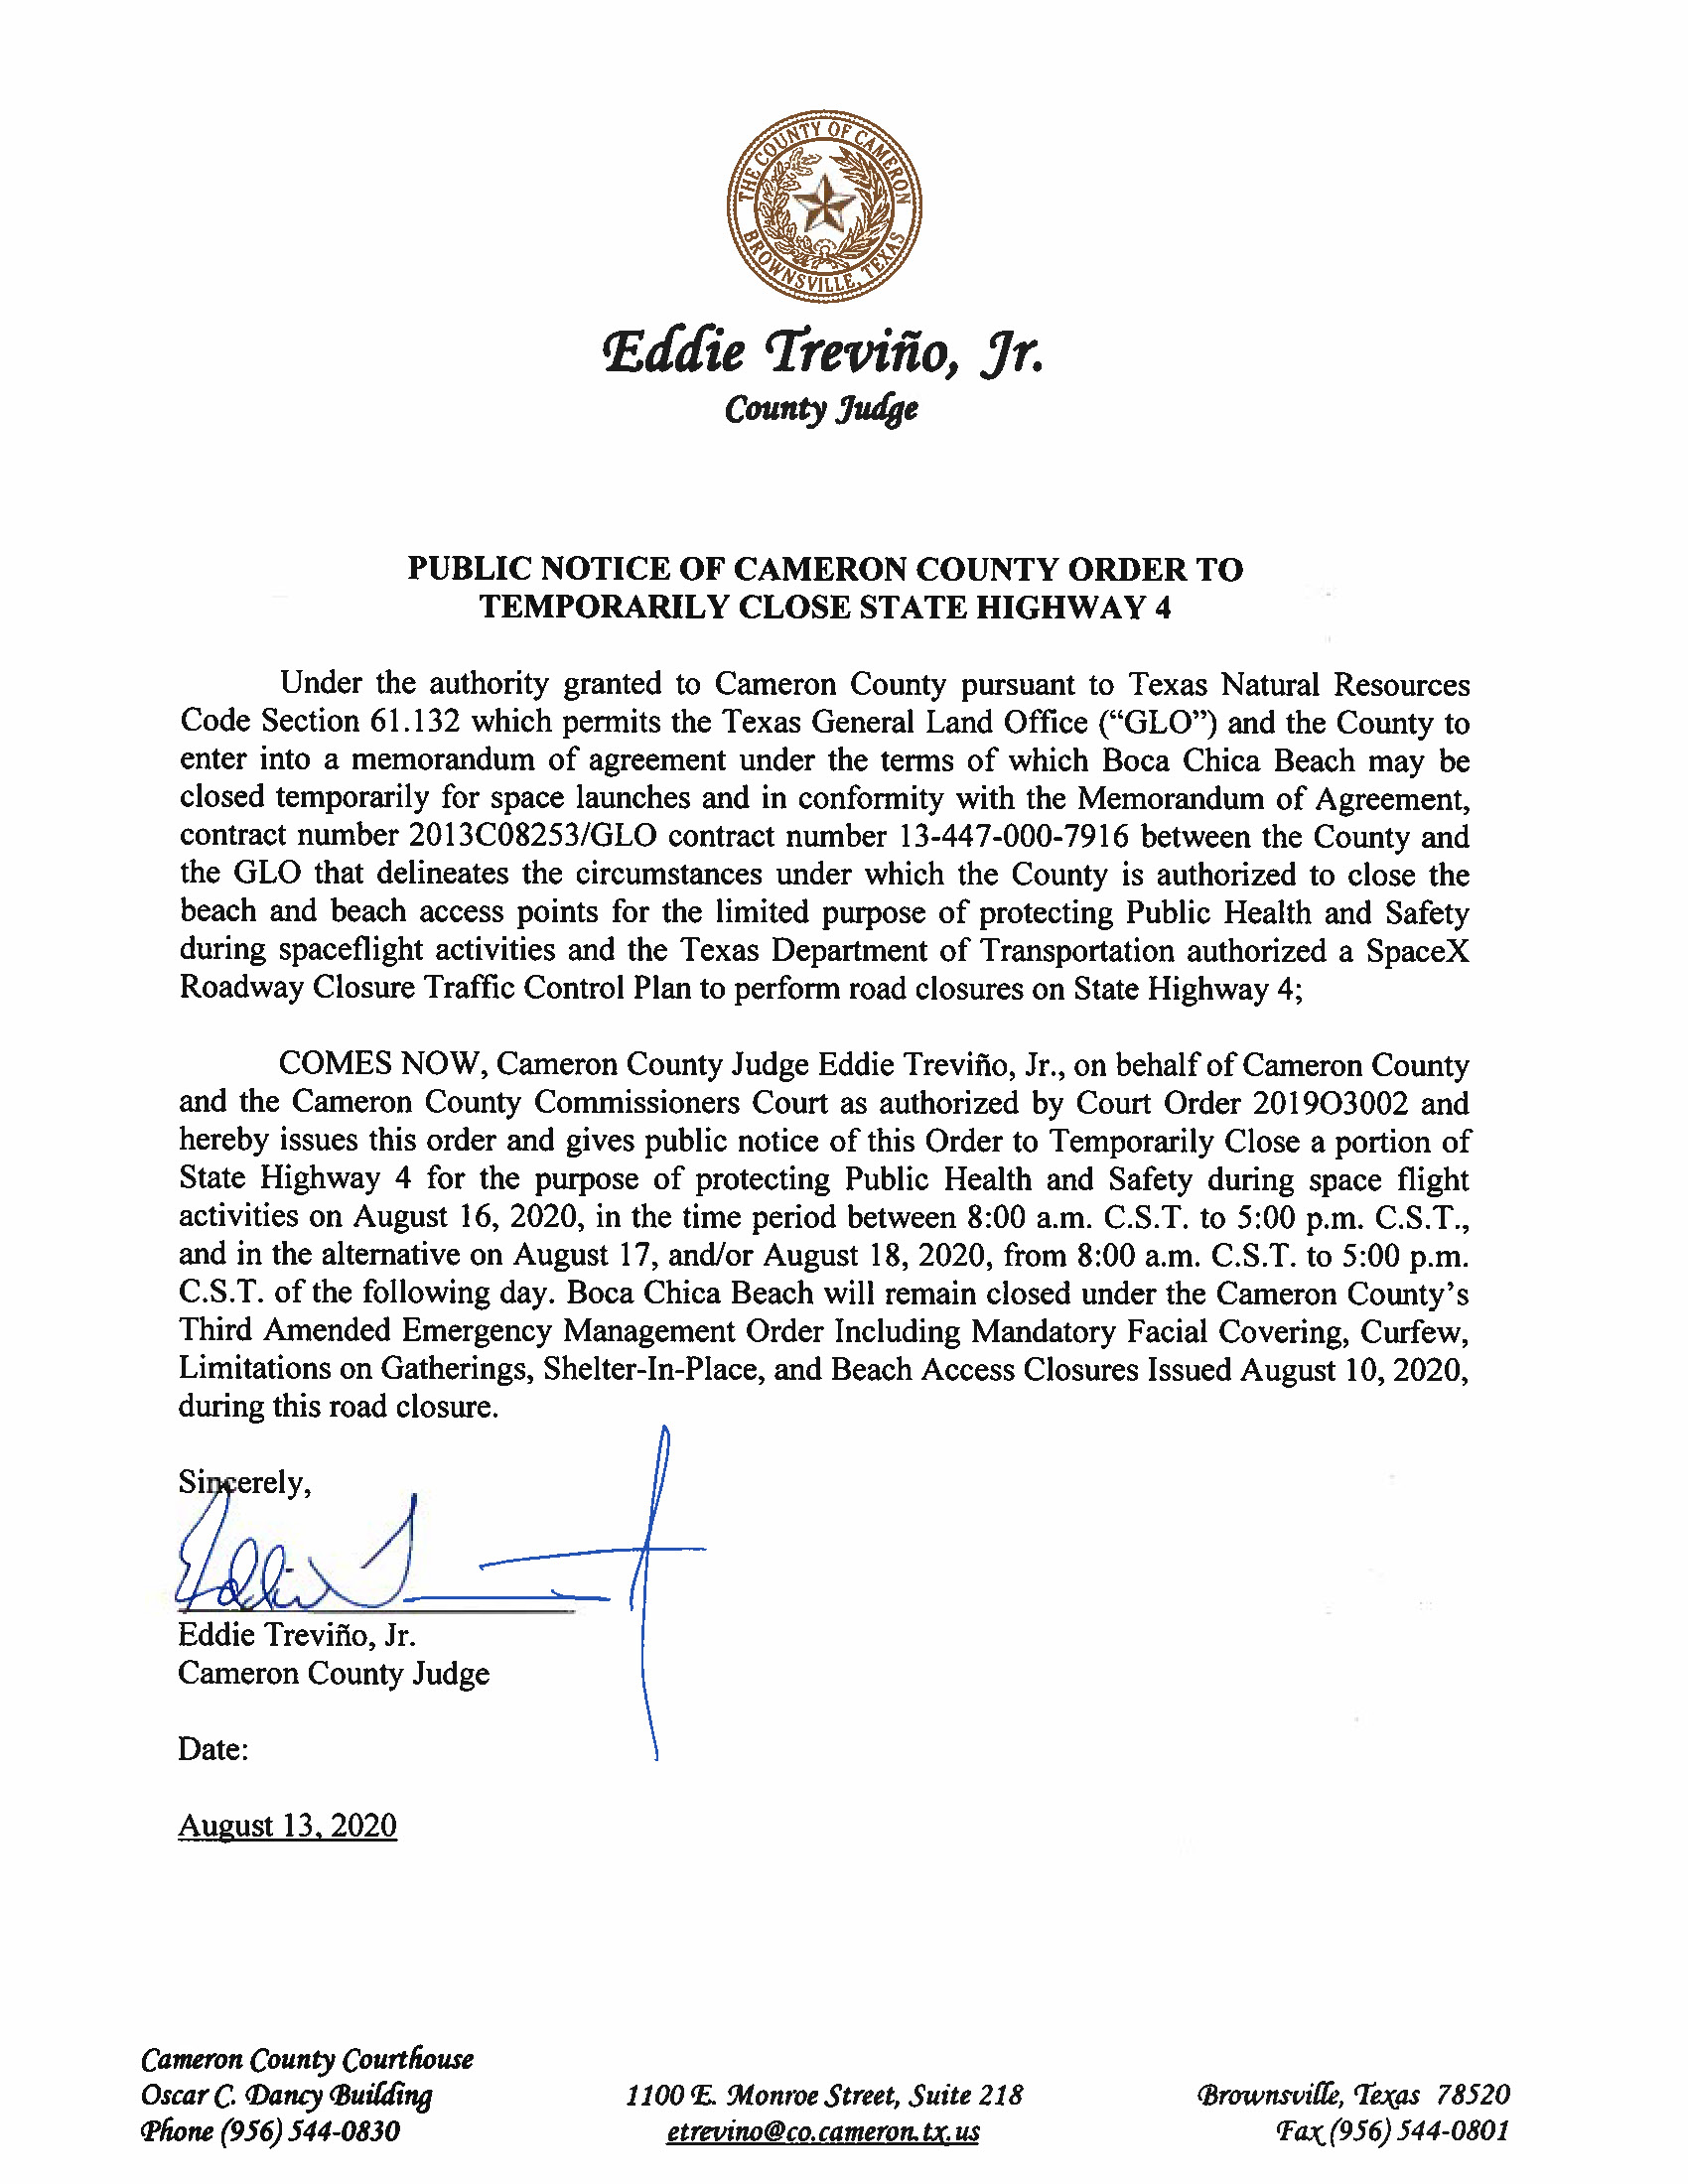 PUBLIC NOTICE OF CAMERON COUNTY ORDER TO TEMP. ROAD CLOSURE. 08.16.20.docx Page 1